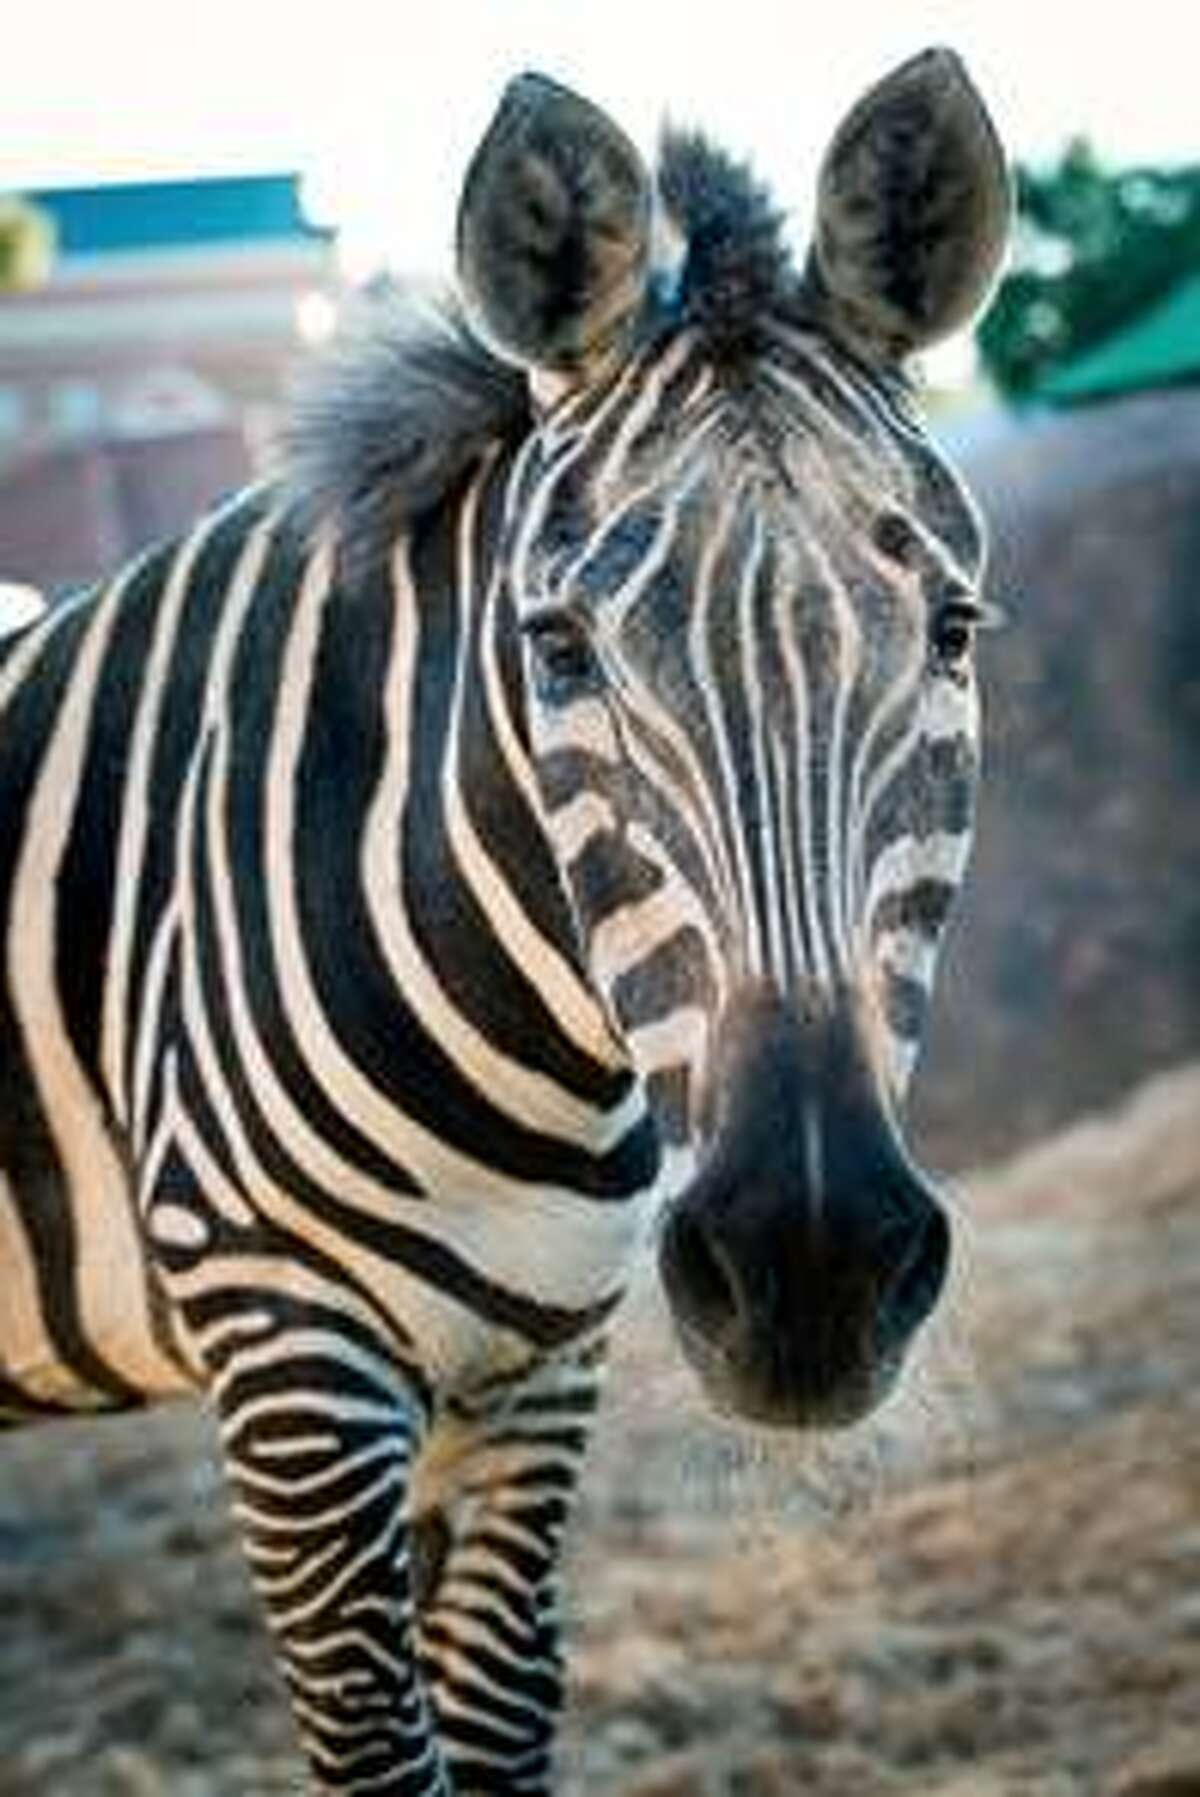 Charlie, a zebra that died on Sunday, will be missed by many, the Houston Zoo says. Continue clicking to see other animals, past and present, from the Houston Zoo.